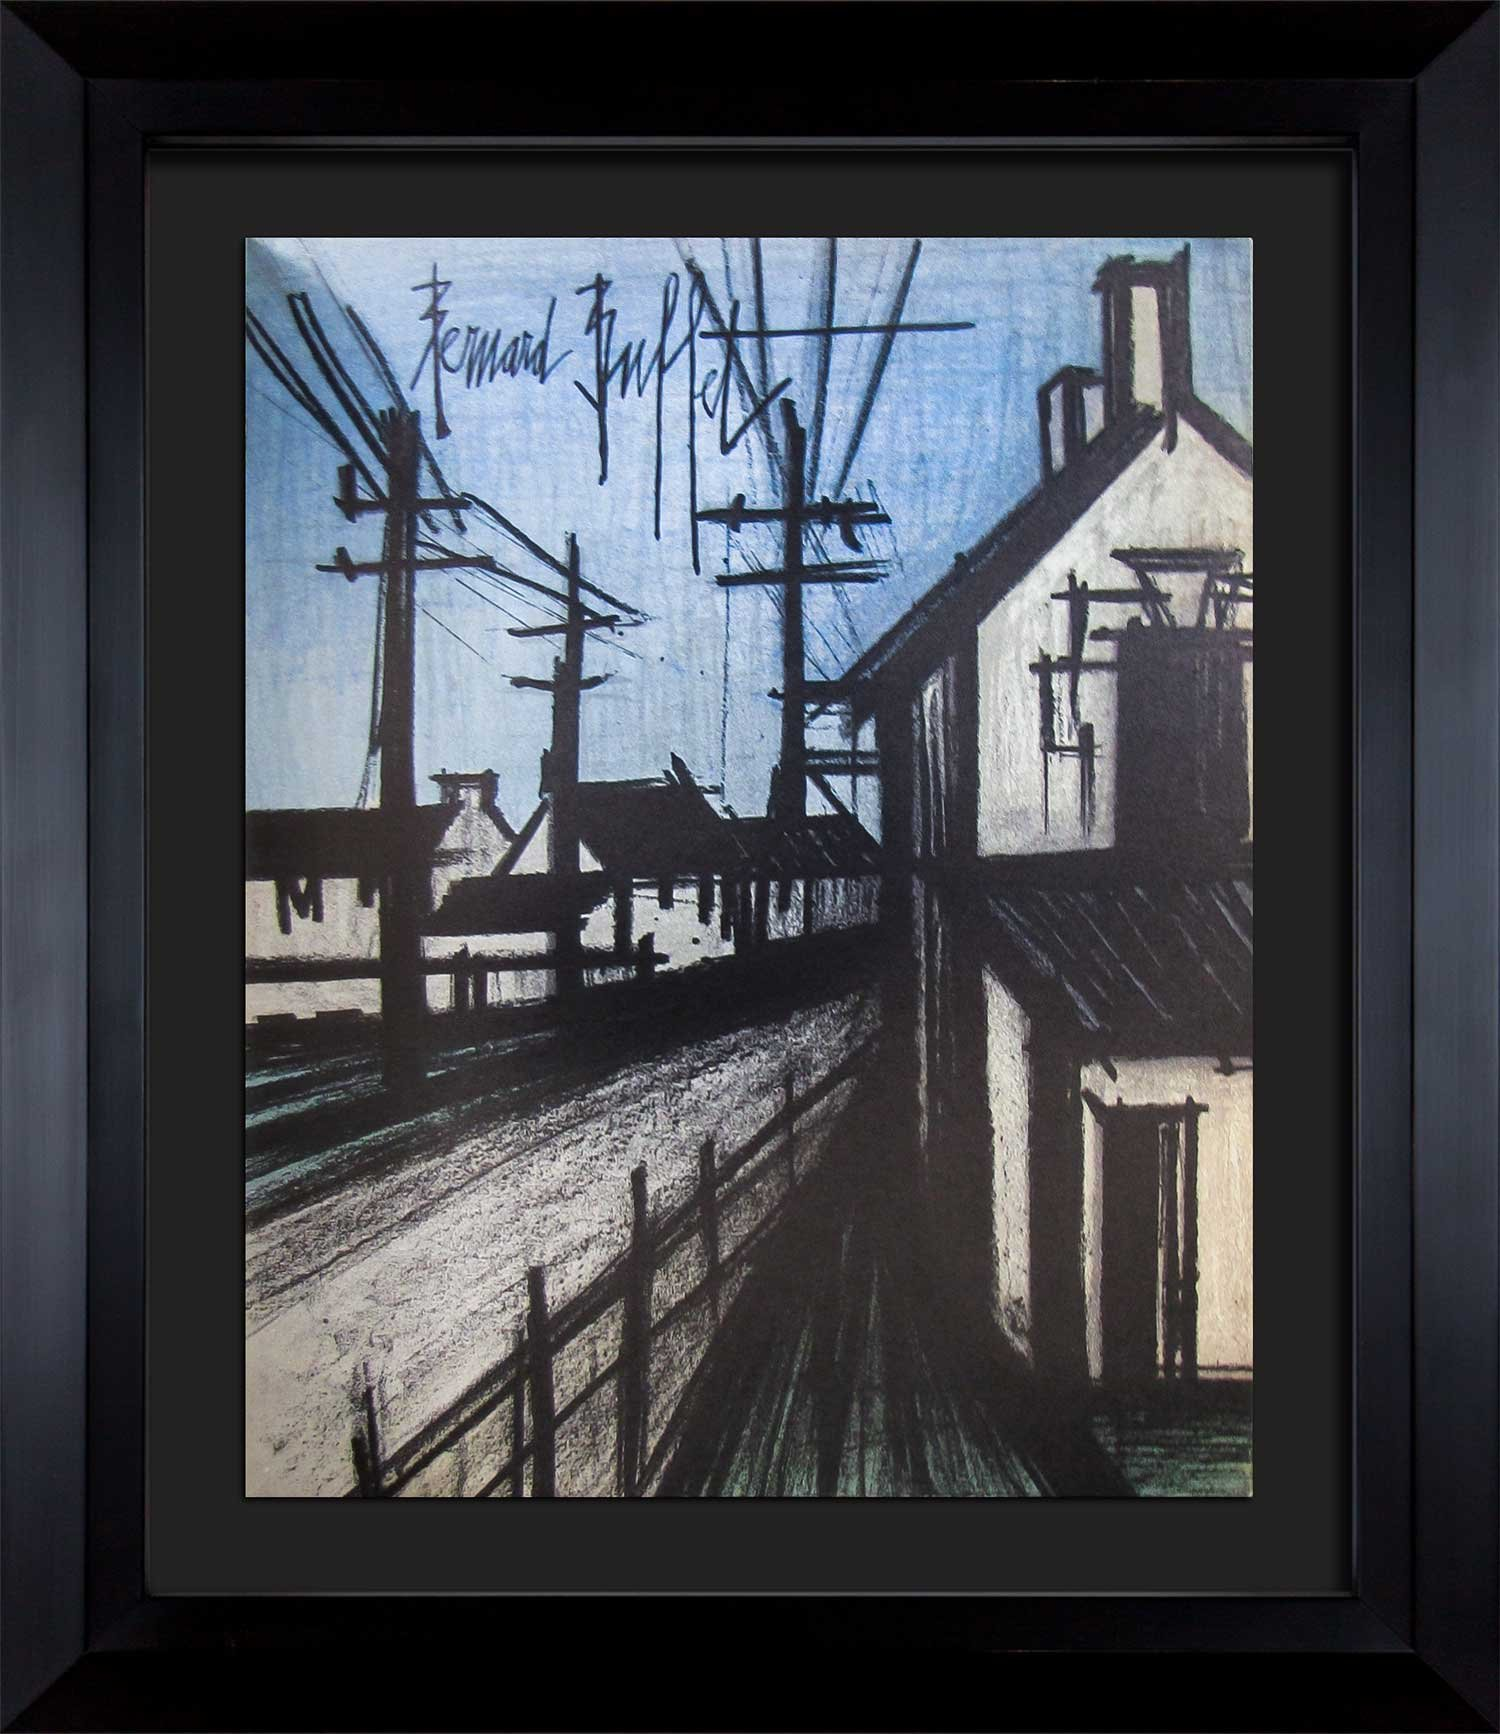 Bernard Buffet (1928 - 1999 ) Original Lithograph | Custom FRAME | SIGN | ARTdocs Registered Documentation + ARTsure Lifetime Guarantee